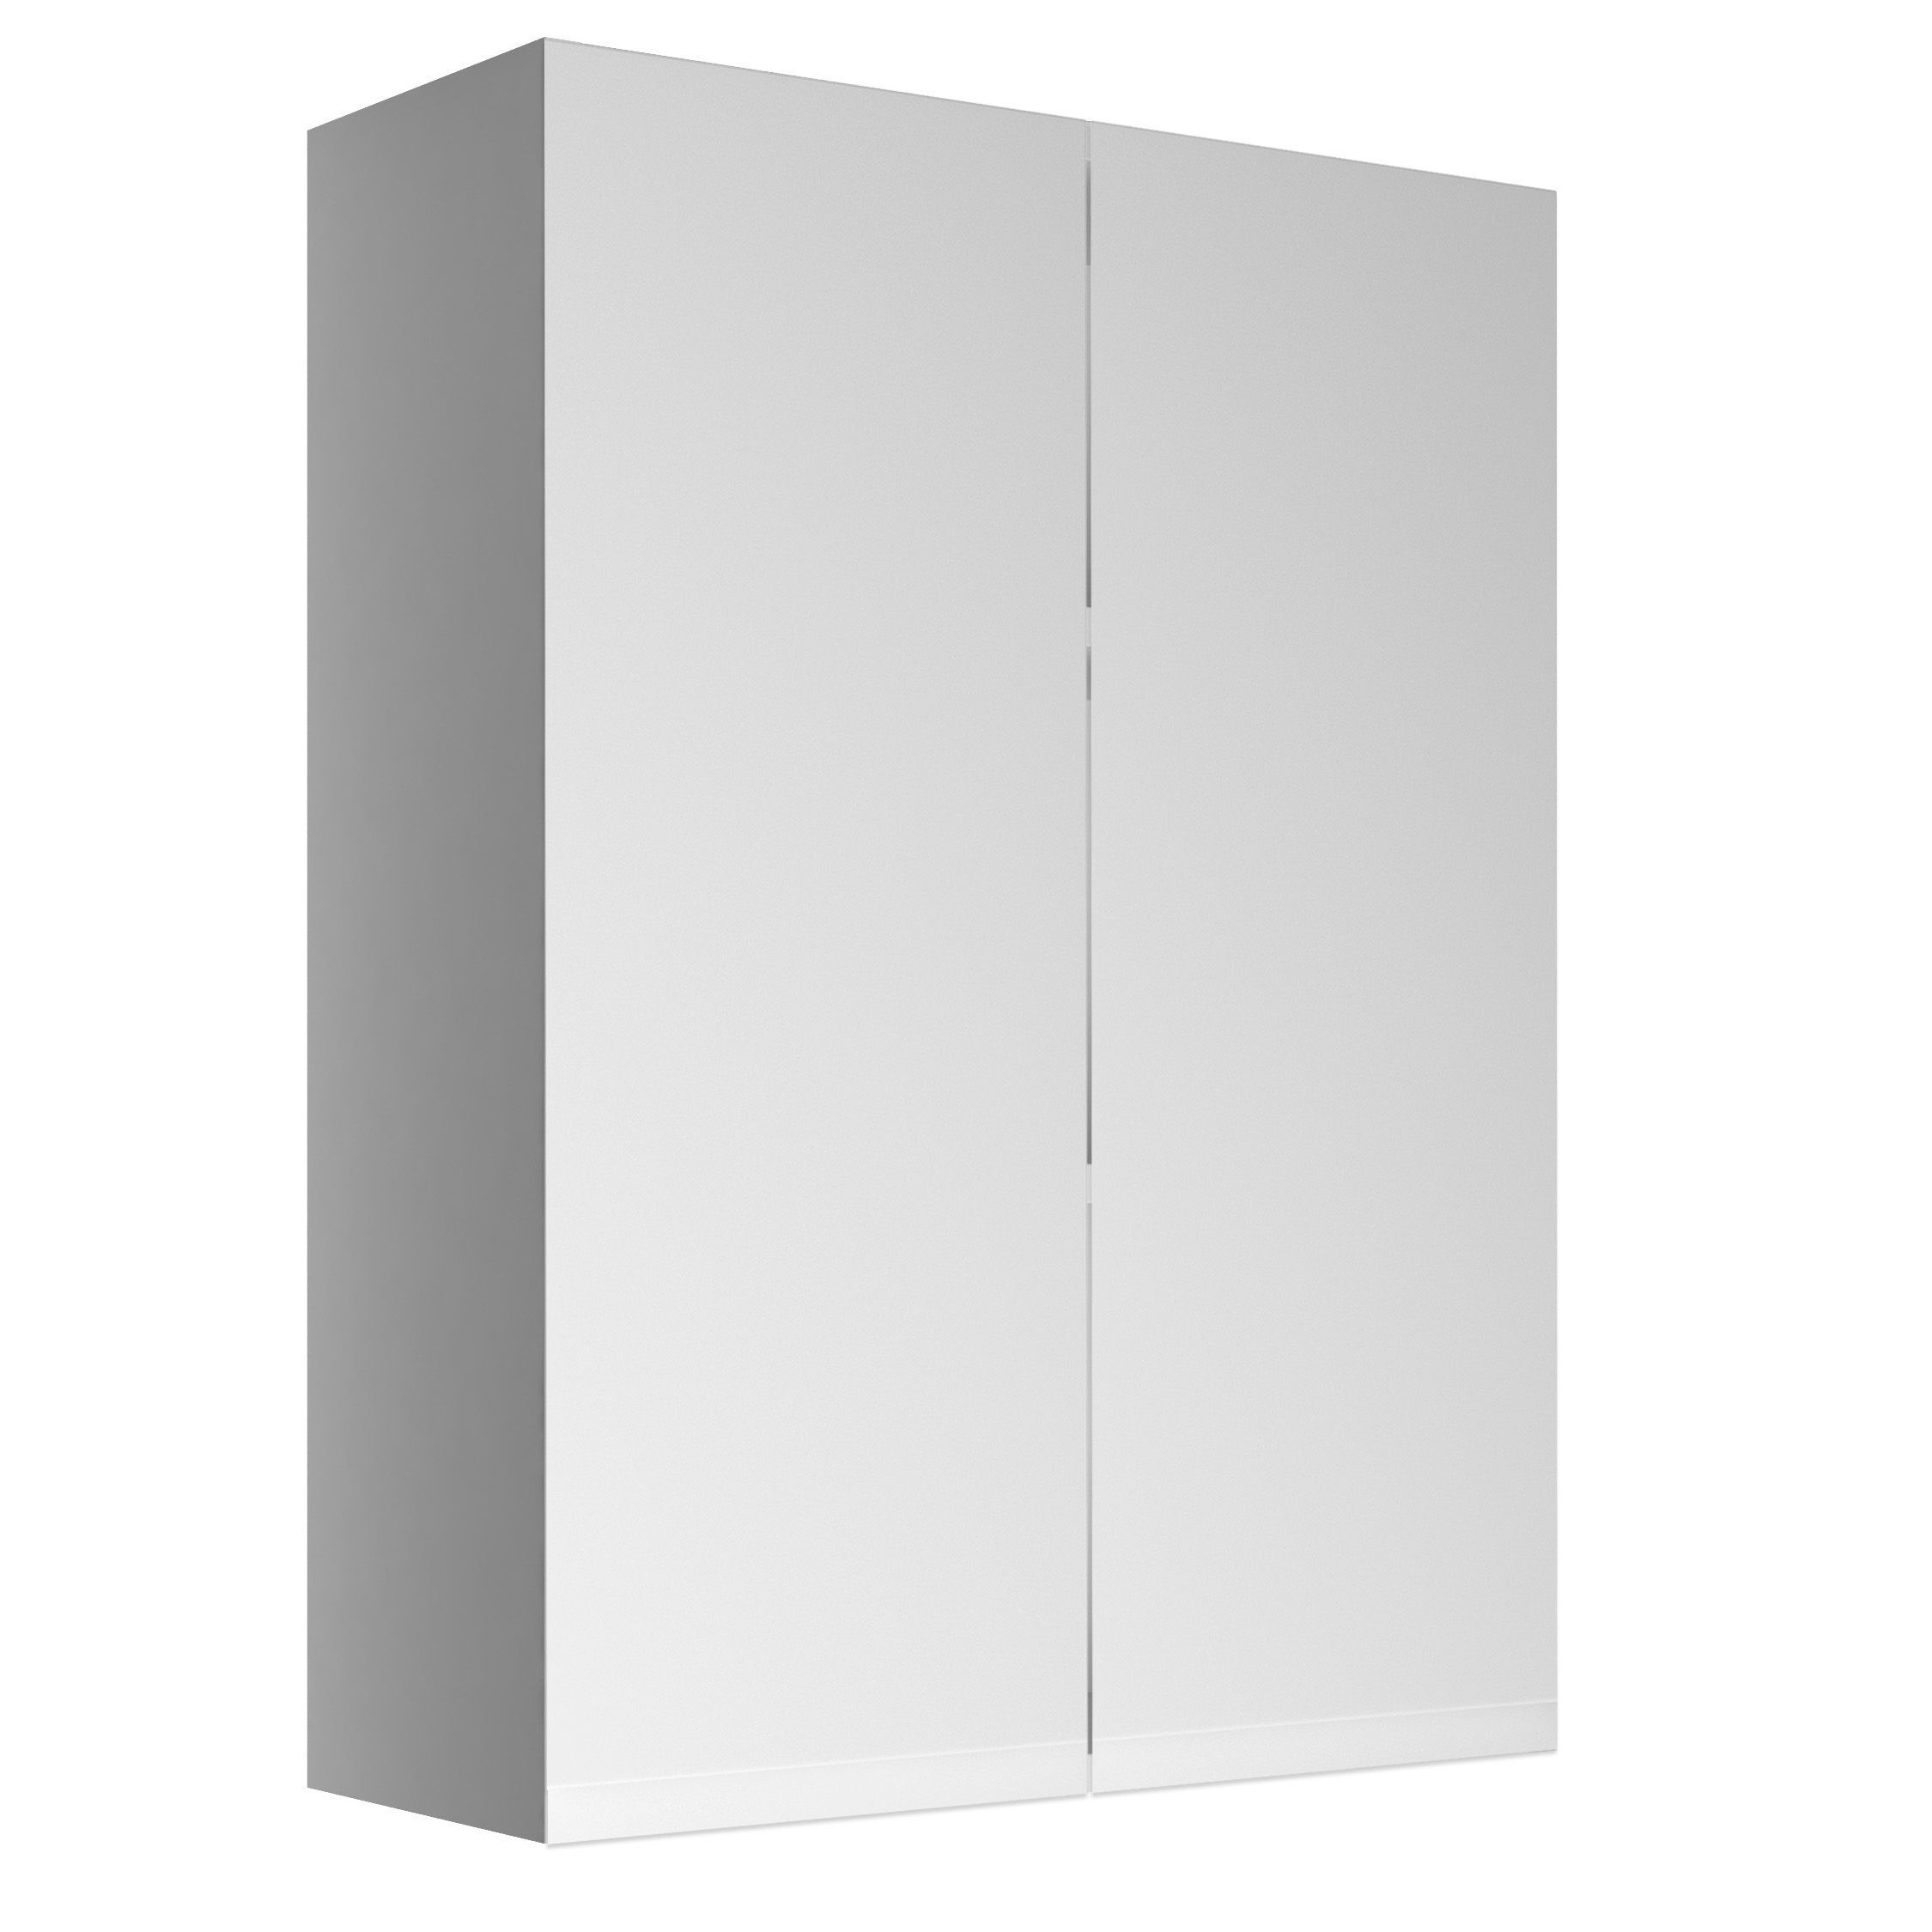 B Q Kitchen Cabinet Doors: Cooke & Lewis Marletti Gloss White Double Door Wall